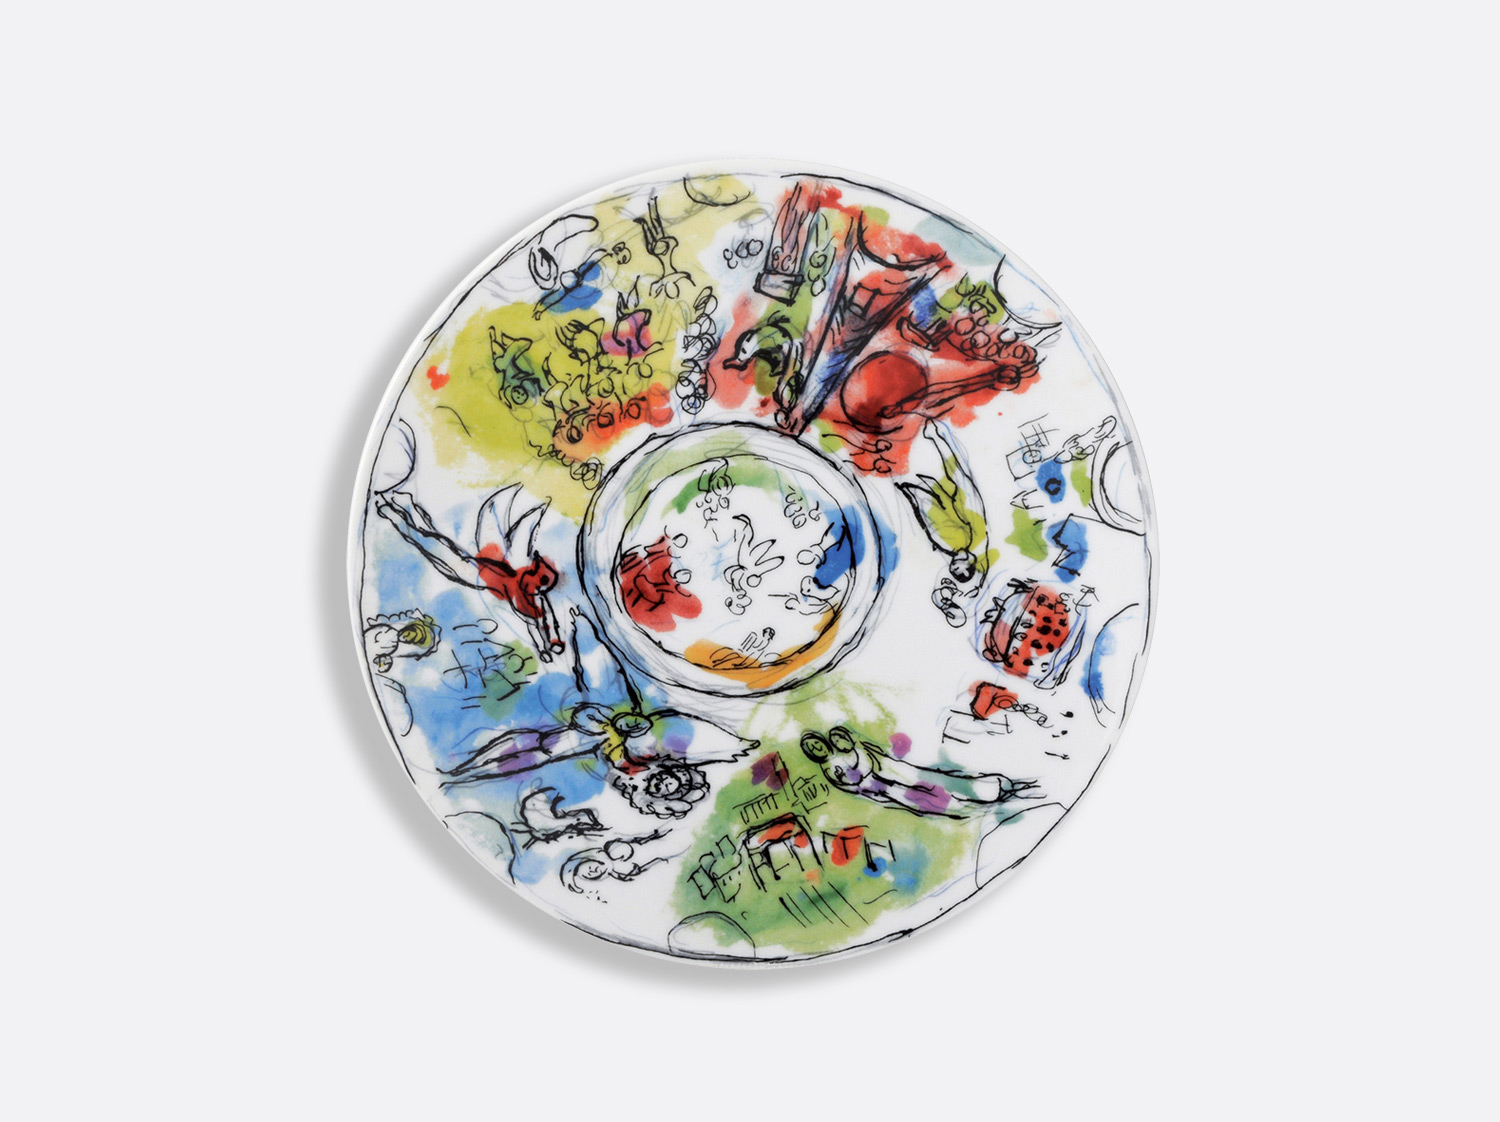 Collectionmarcchagall assiette21opera3 %c2%a9 adagp  paris  2020   chagall